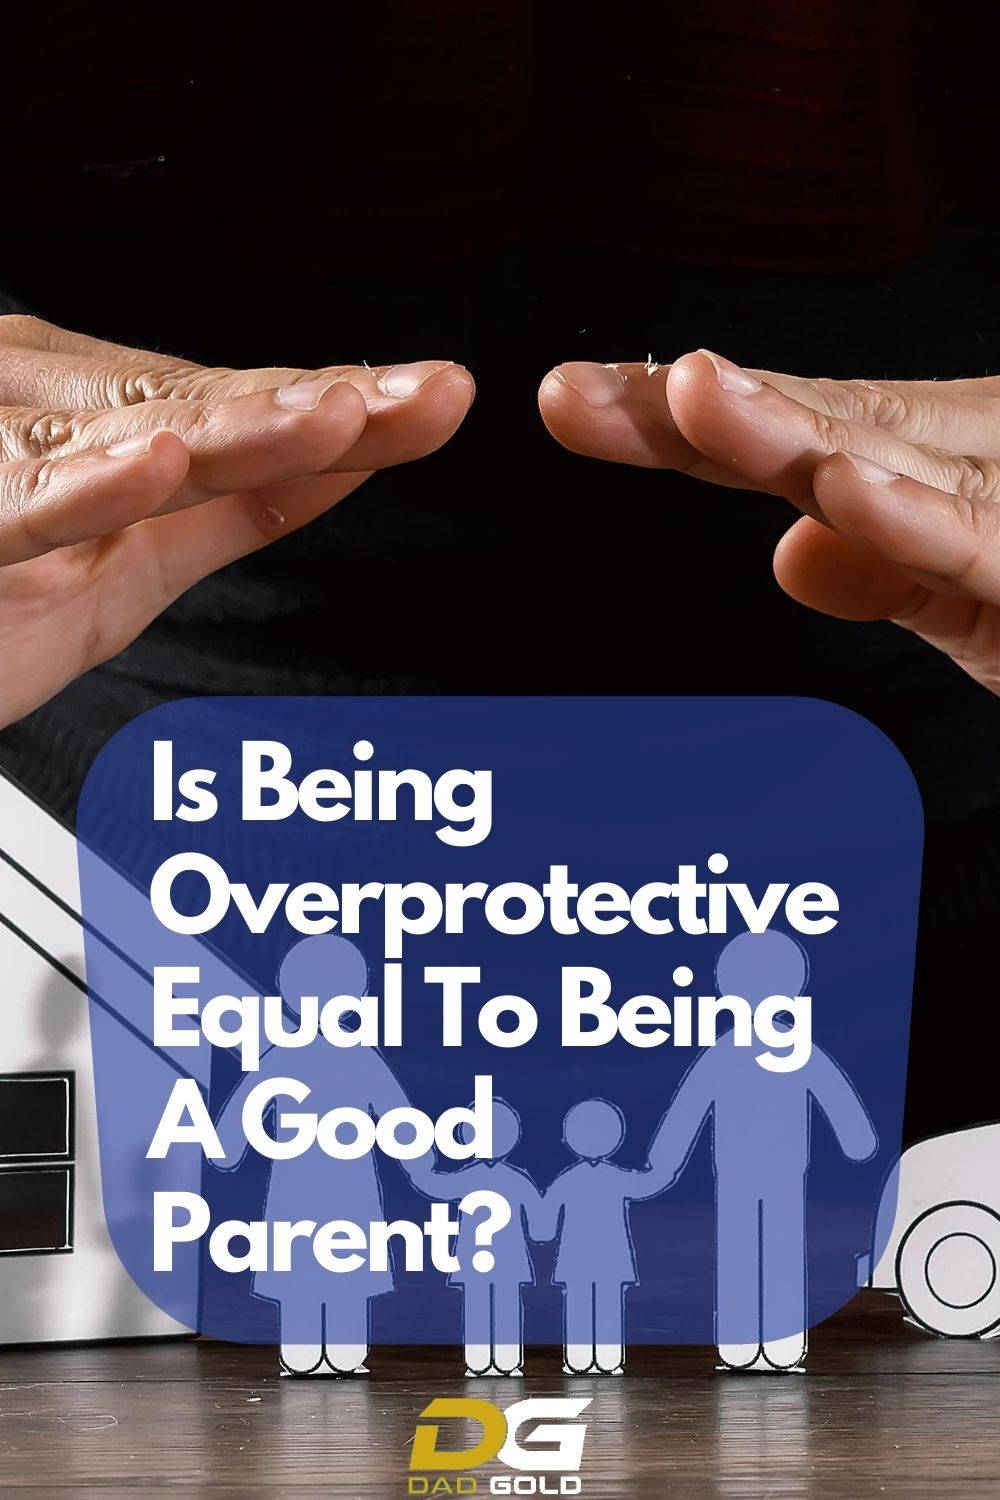 Is Being Overprotective Equal To Being A Good Parent